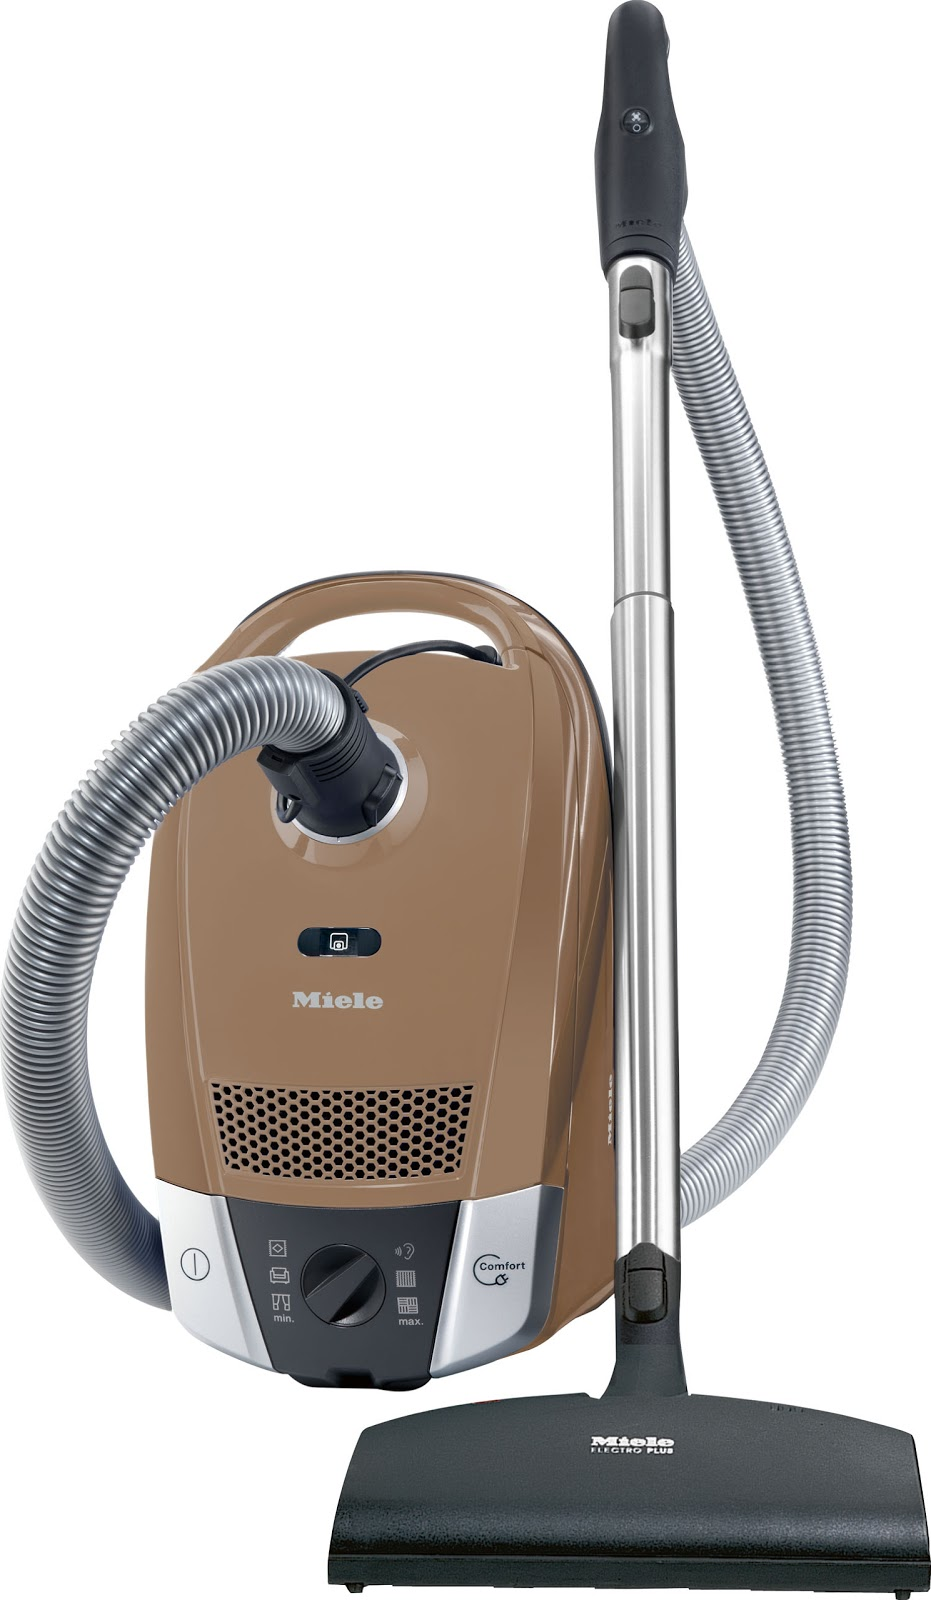 JJ's Green & Natural Cleaning at VacShack.com: Miele S6 Canister Vacuum Cleaner